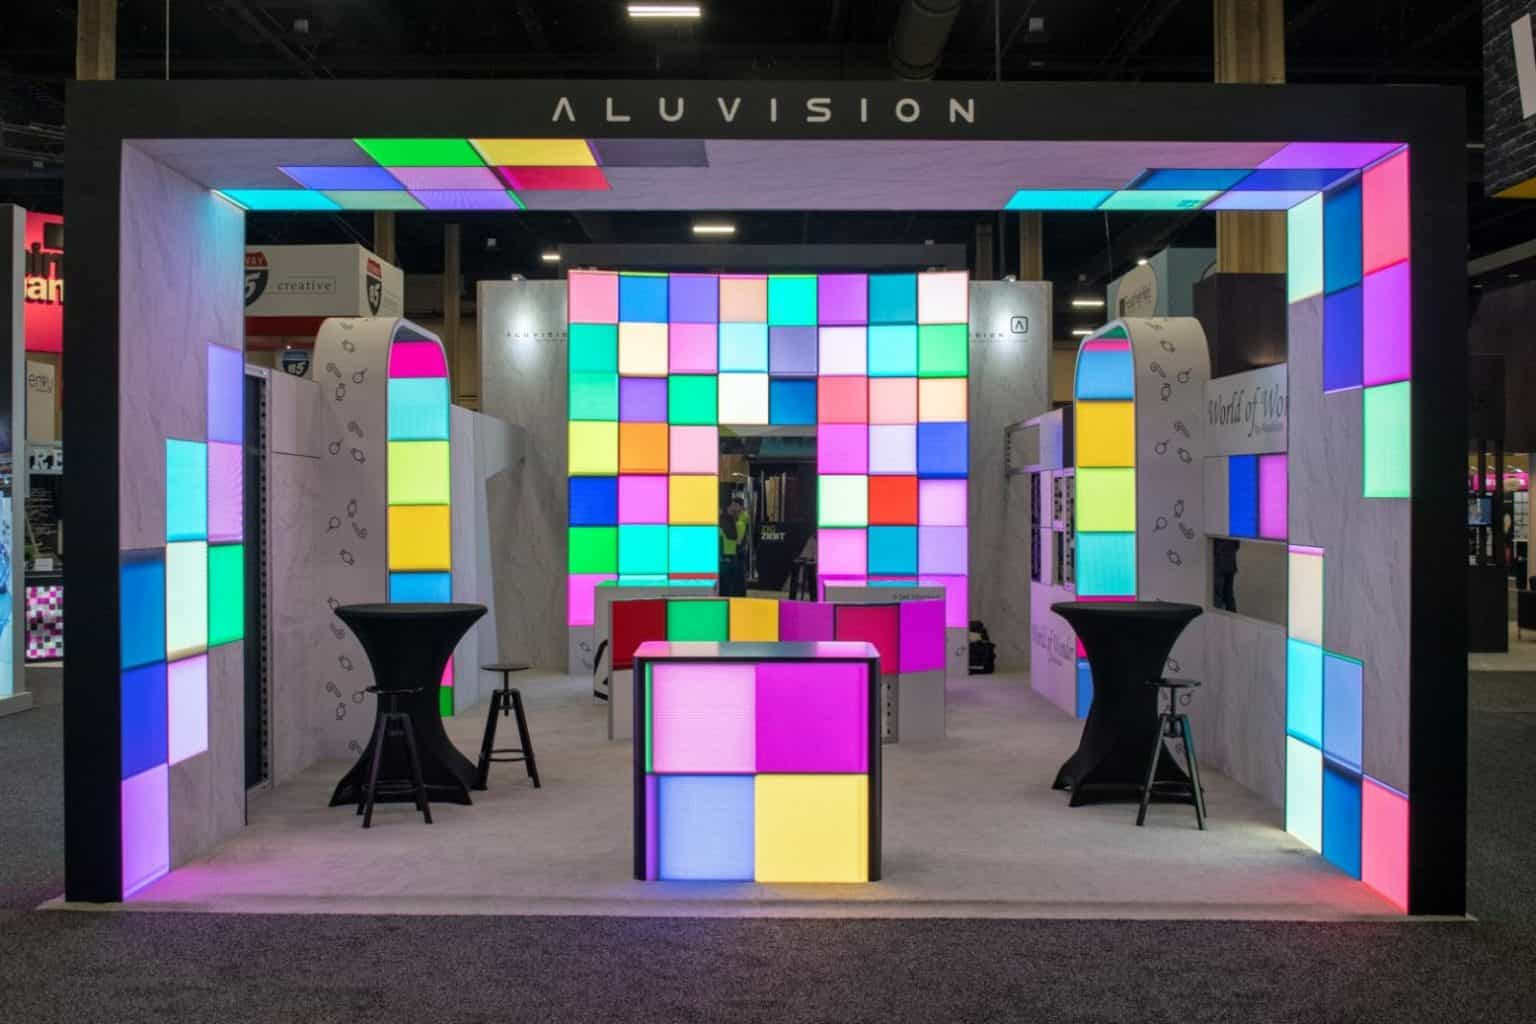 Aluvision Hi-LED 55 Screen Vortex Events